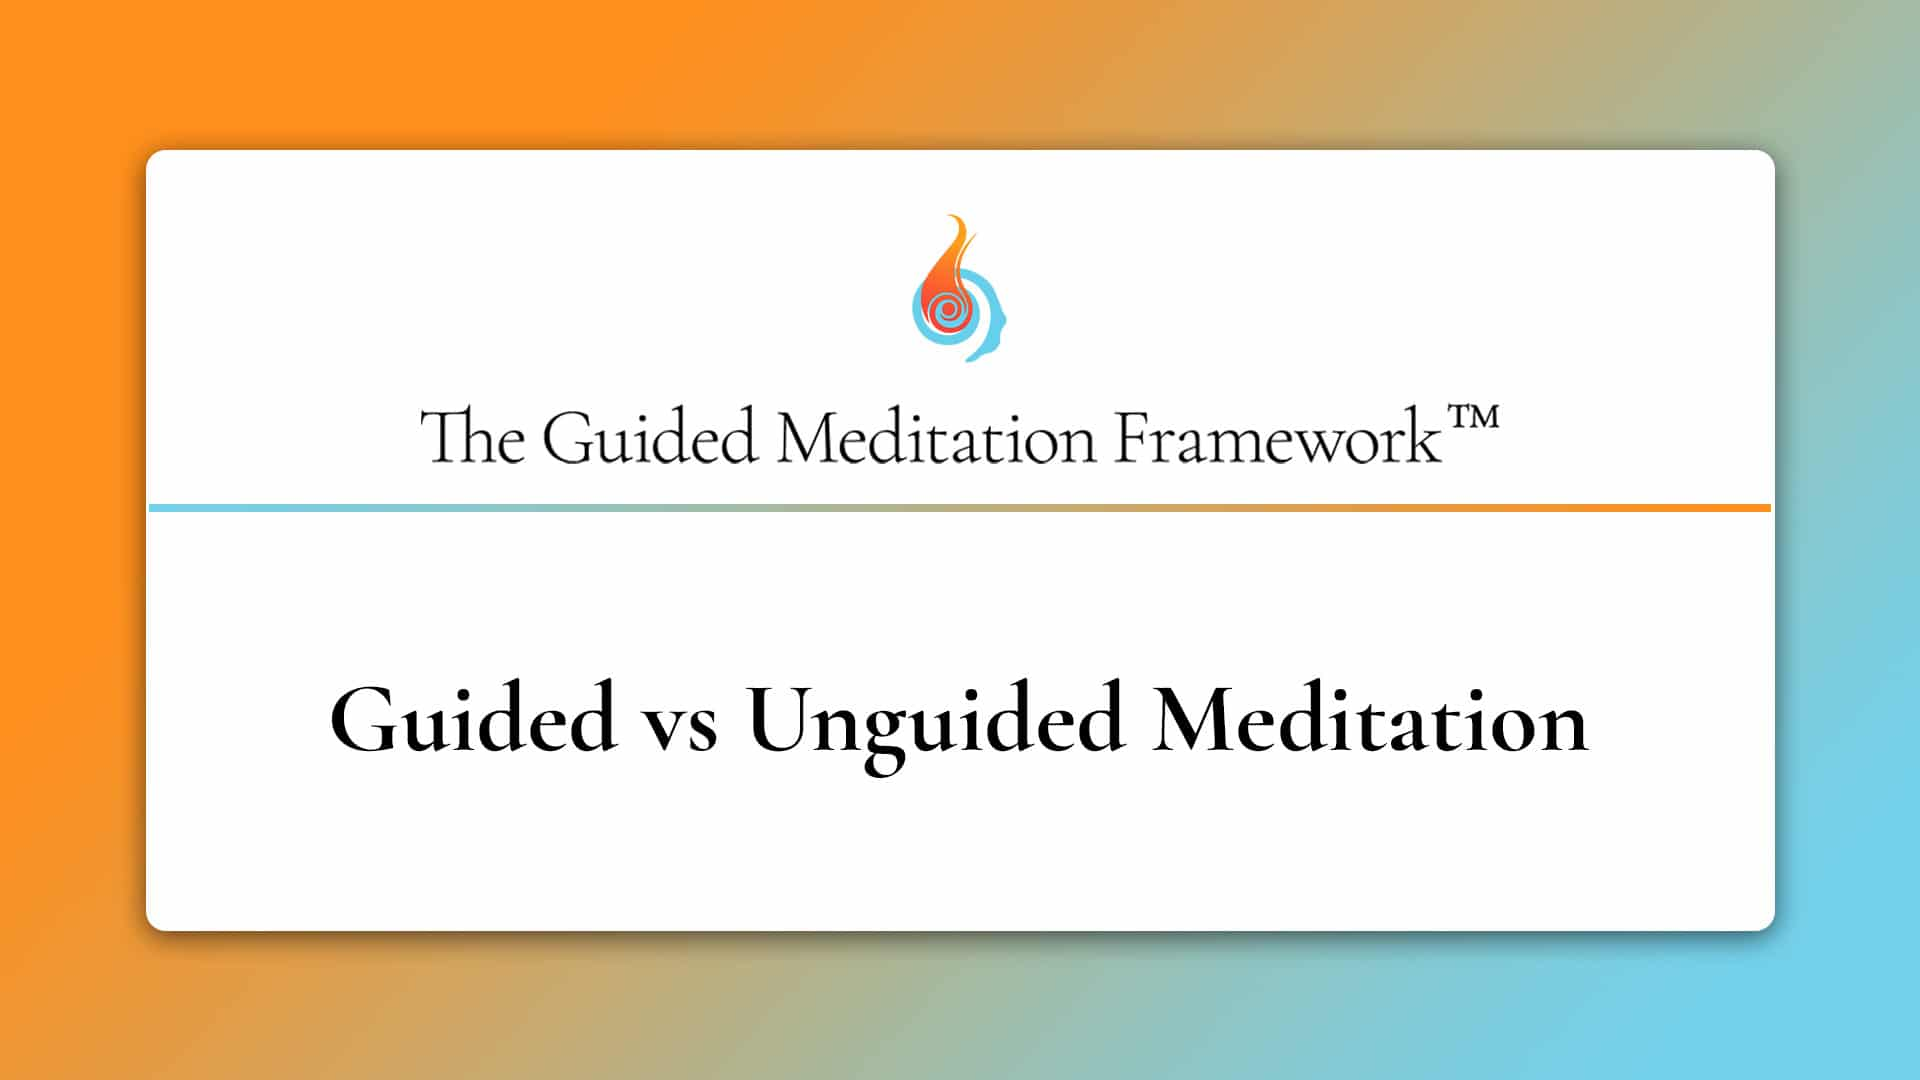 The Guided Meditation Framework guided vs unguided